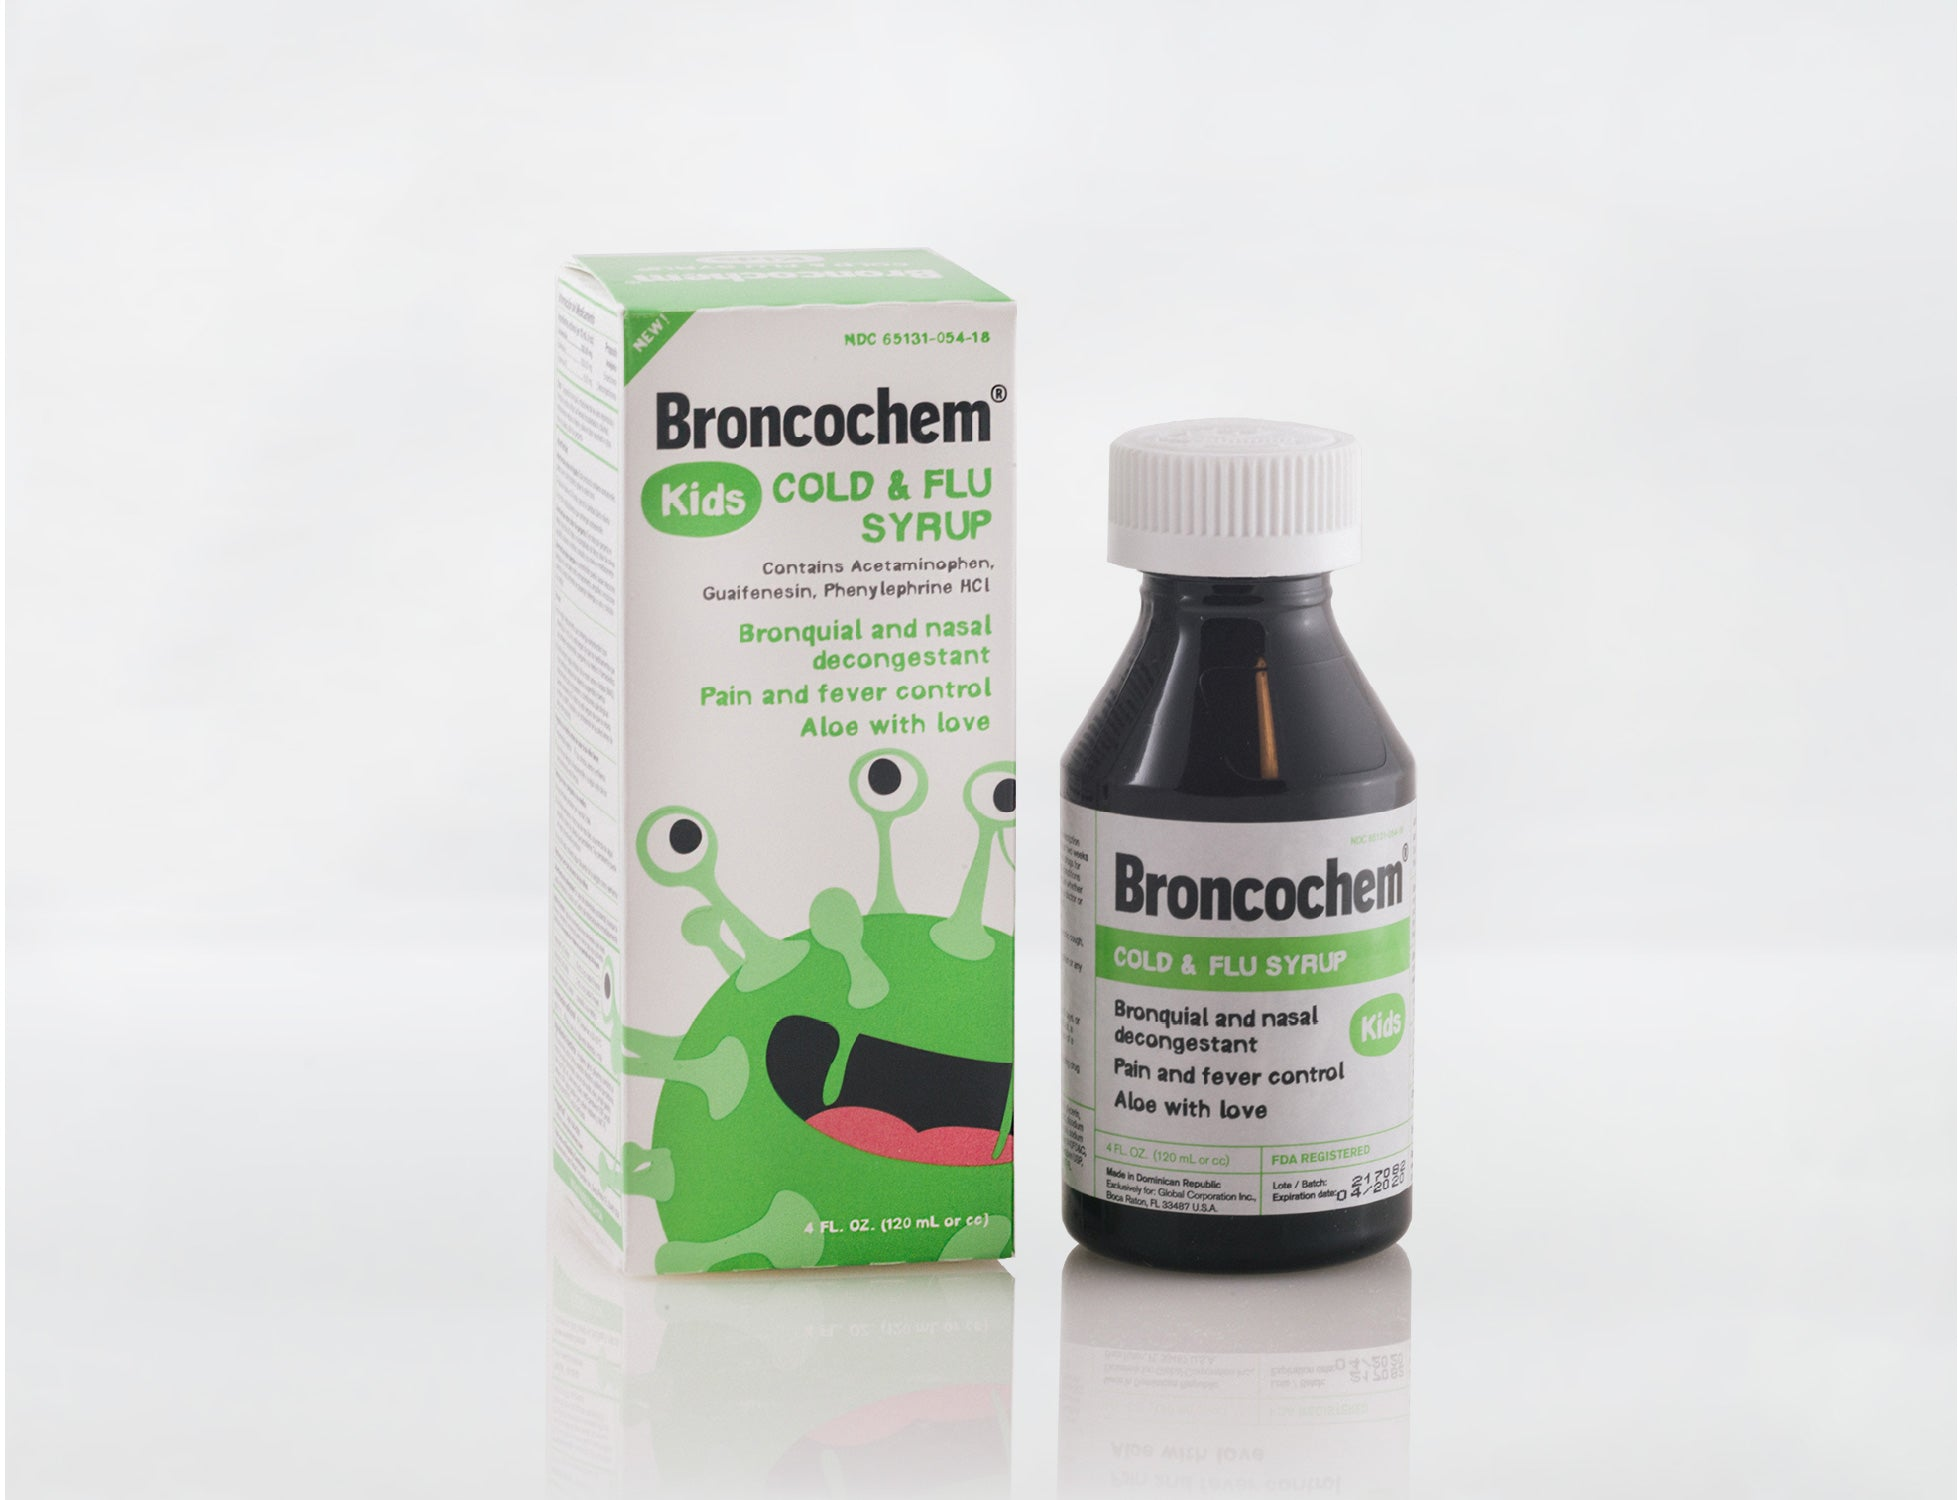 Broncochem Kids 2+ Cold & Flu Syrup